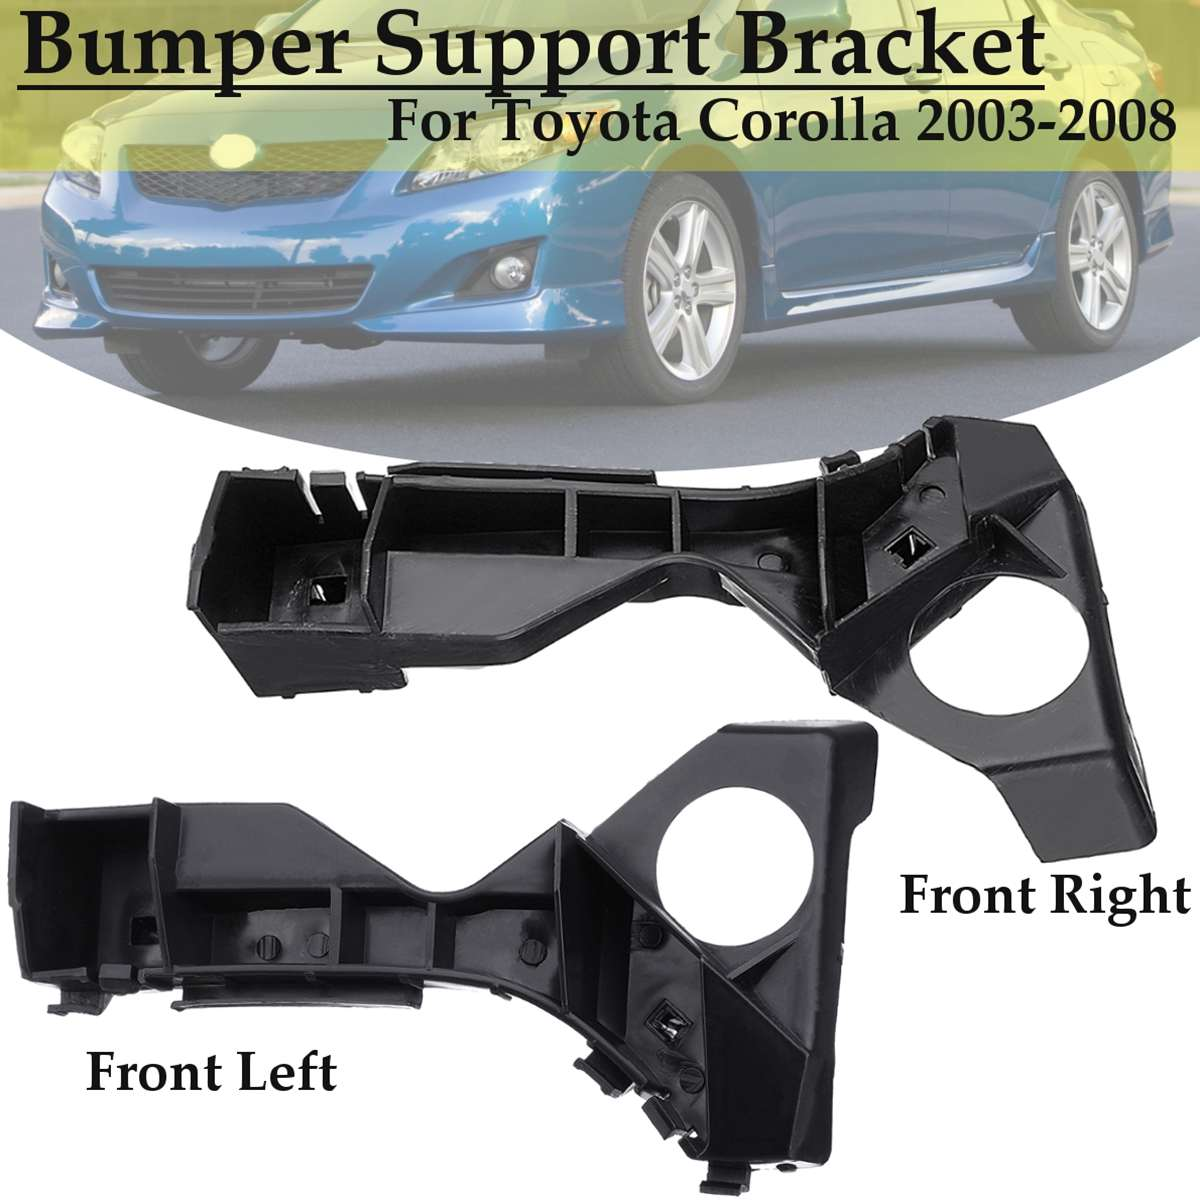 Front Right Left Bumper Support Spacer Bracket For Toyota Corolla 2003 2004 2005 2006 2007 2008 #5211602061 TO1066142 image